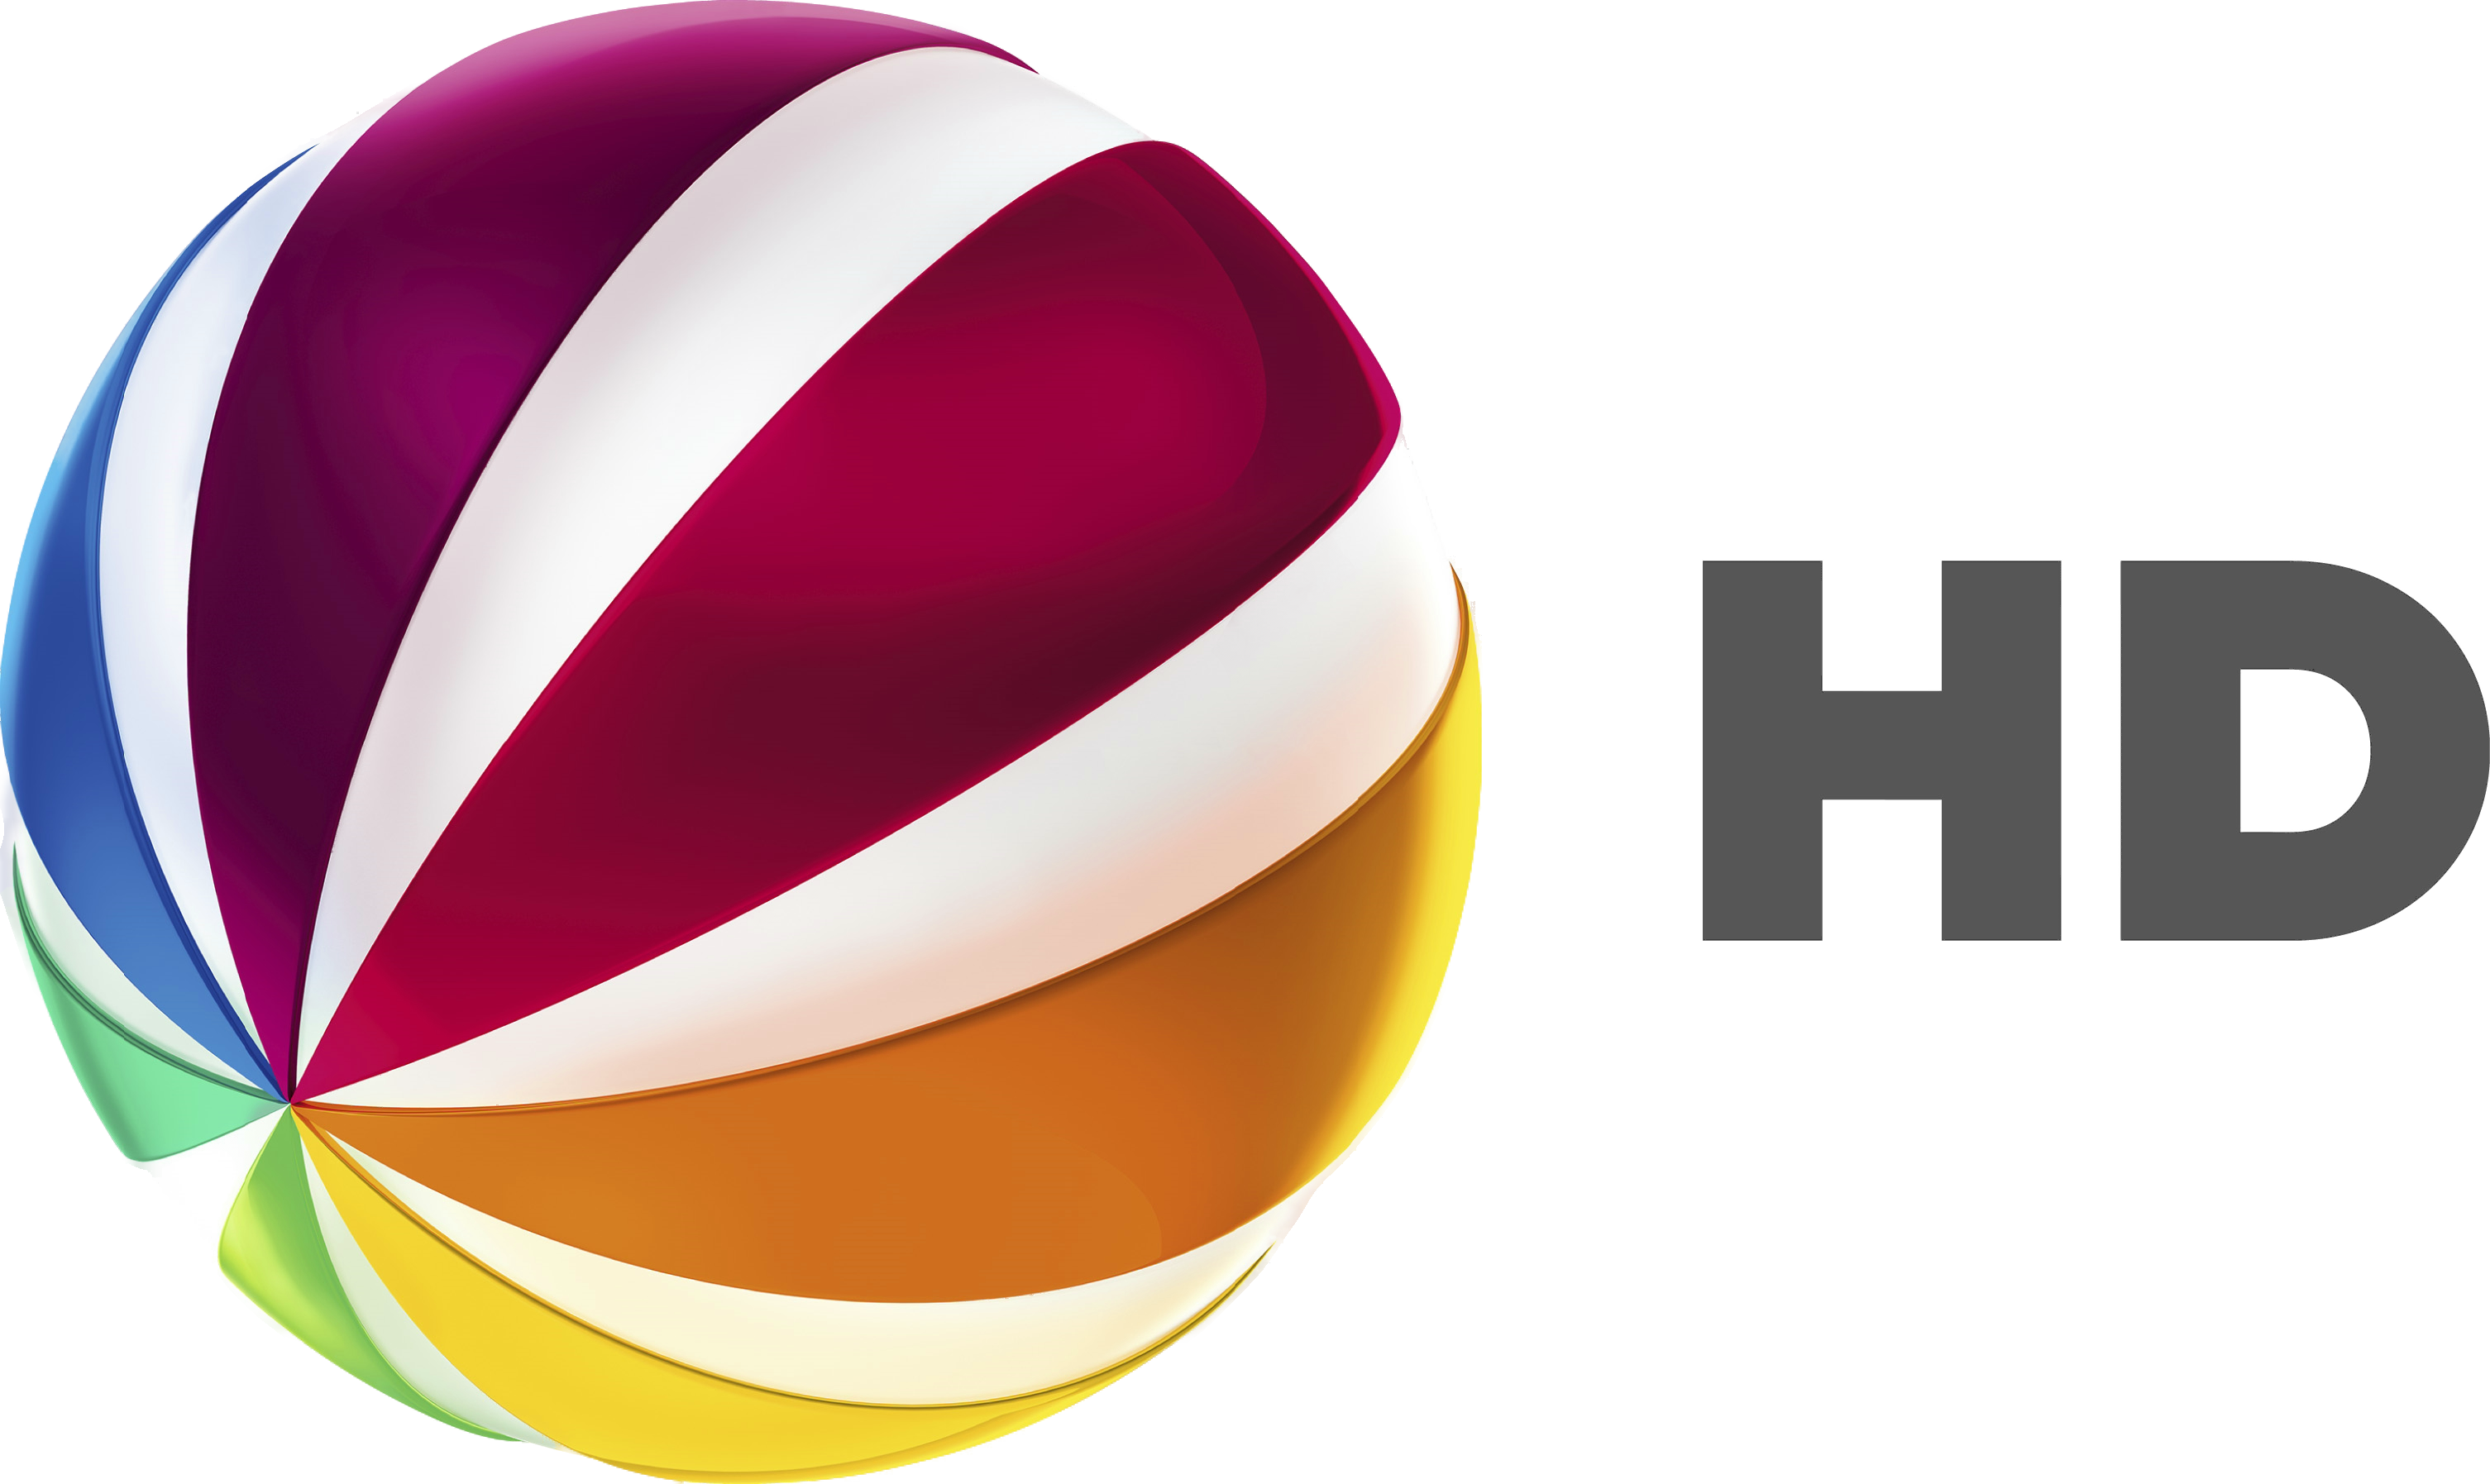 1 Hd Logo Transparent.png - Transparent, Transparent background PNG HD thumbnail